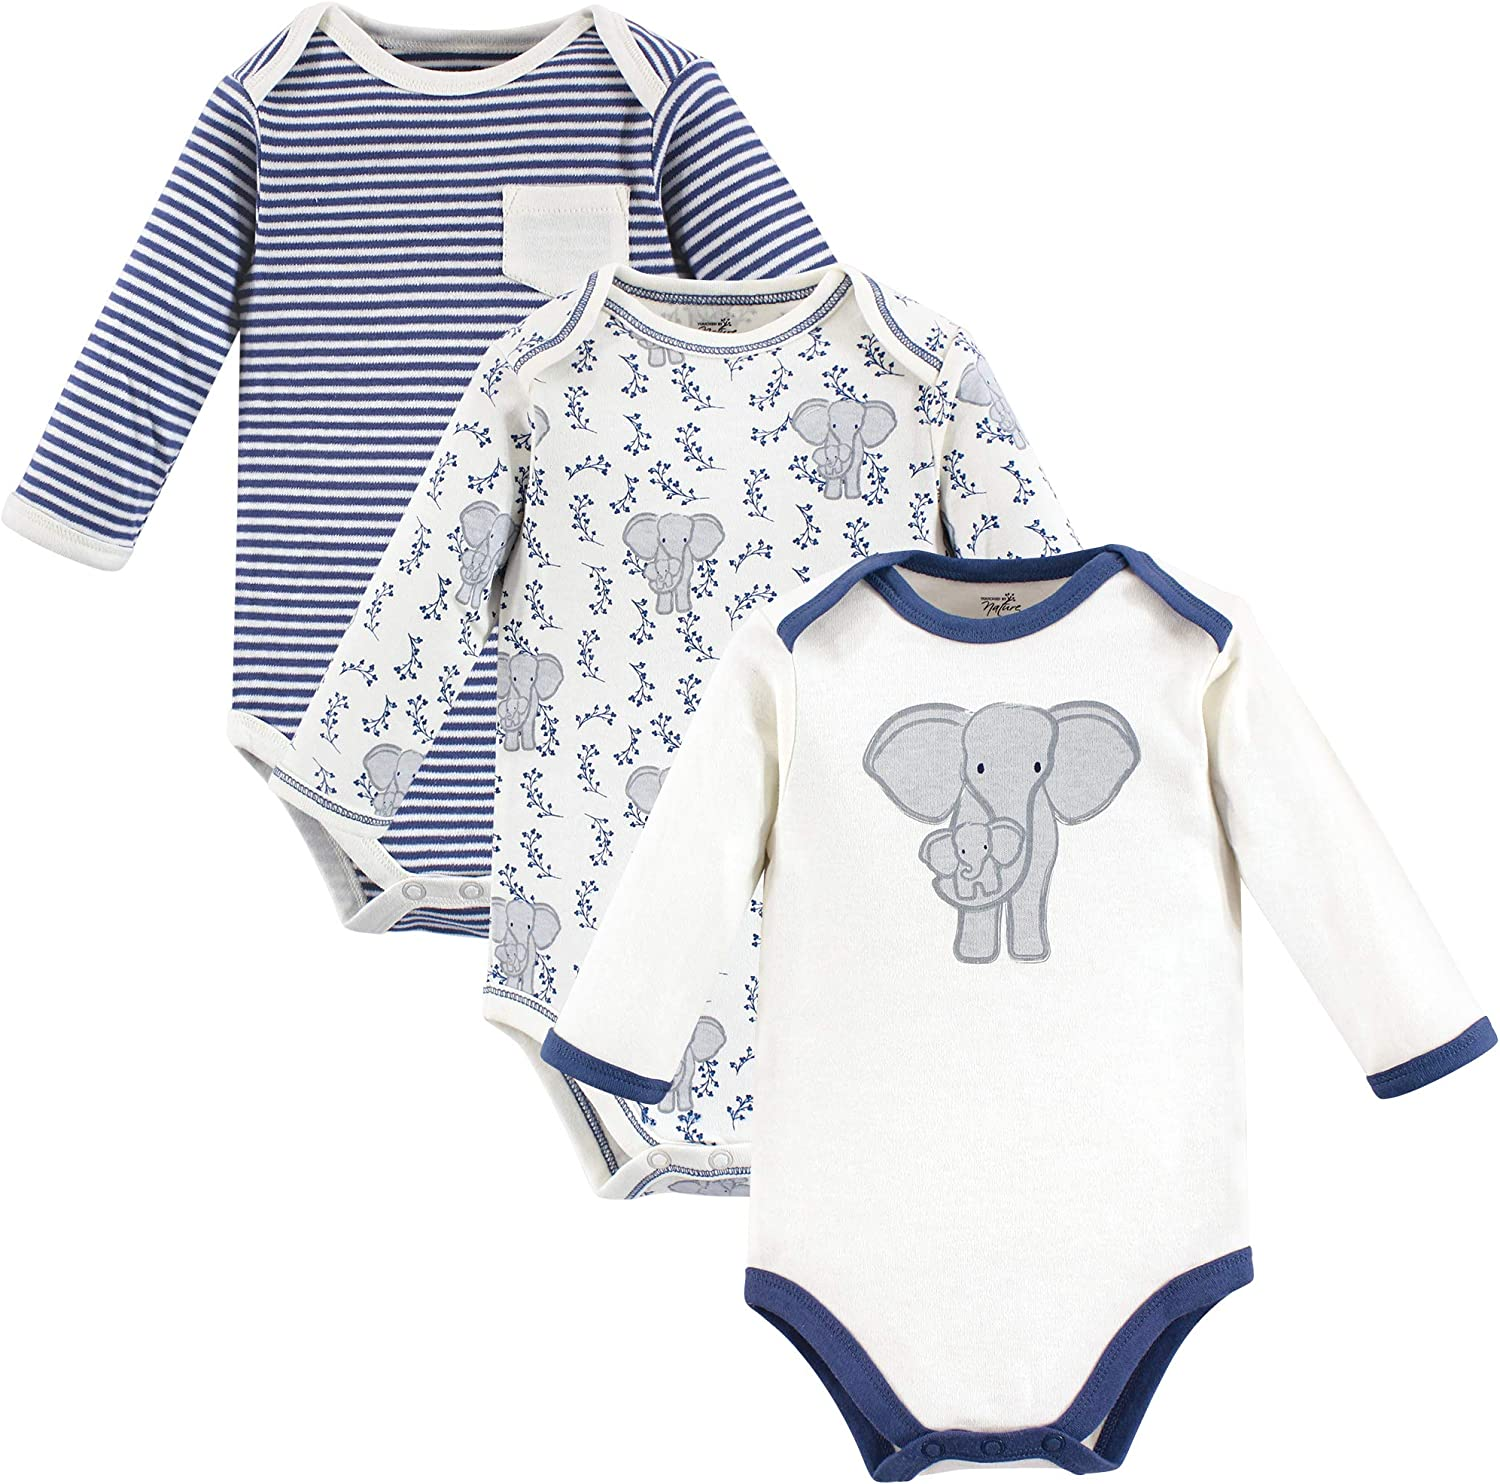 Touched by Nature Baby Boys' Organic Cotton Long-Sleeve Bodysuits